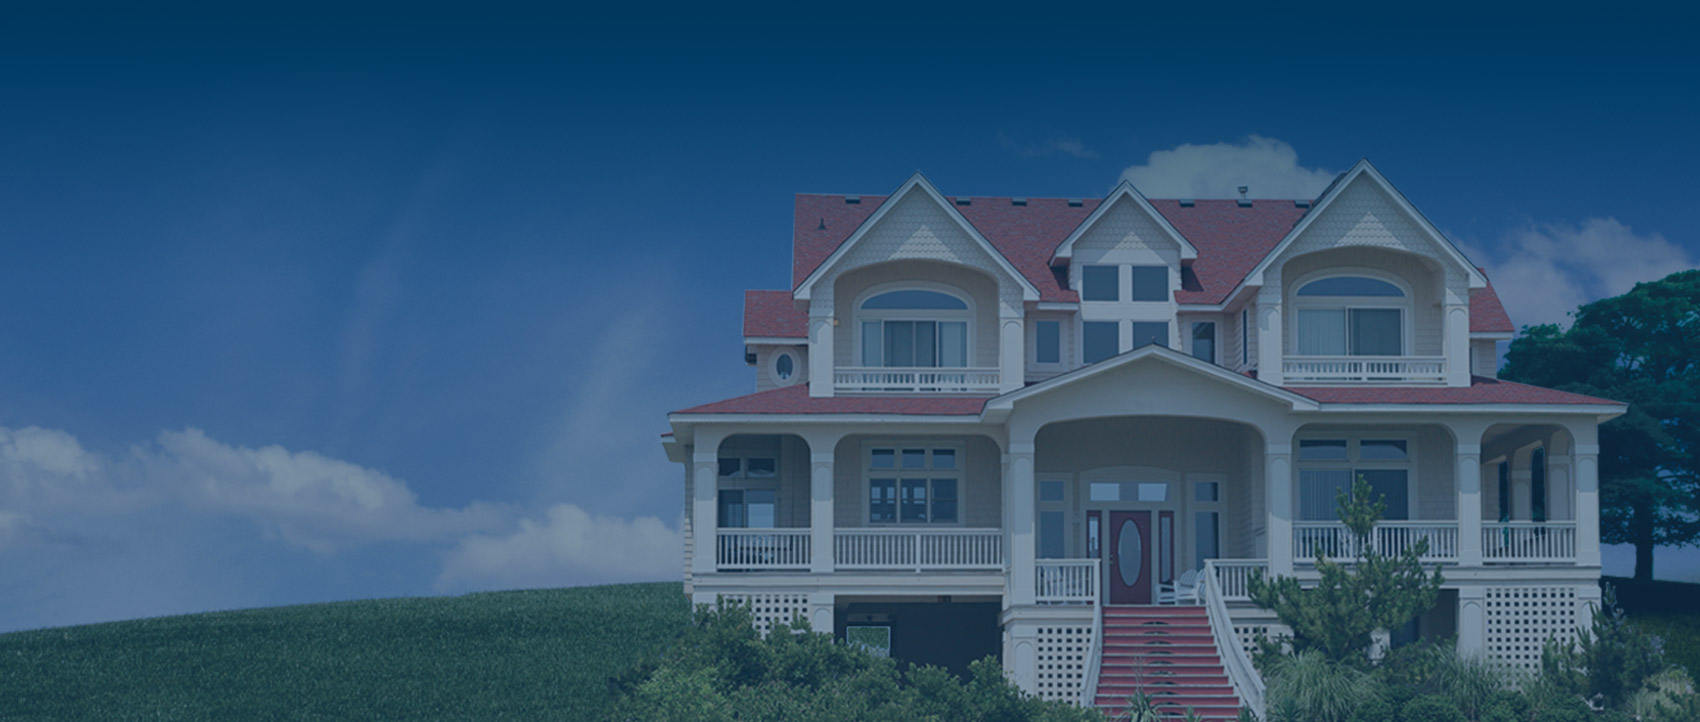 Home Inspection Checklist in Columbia